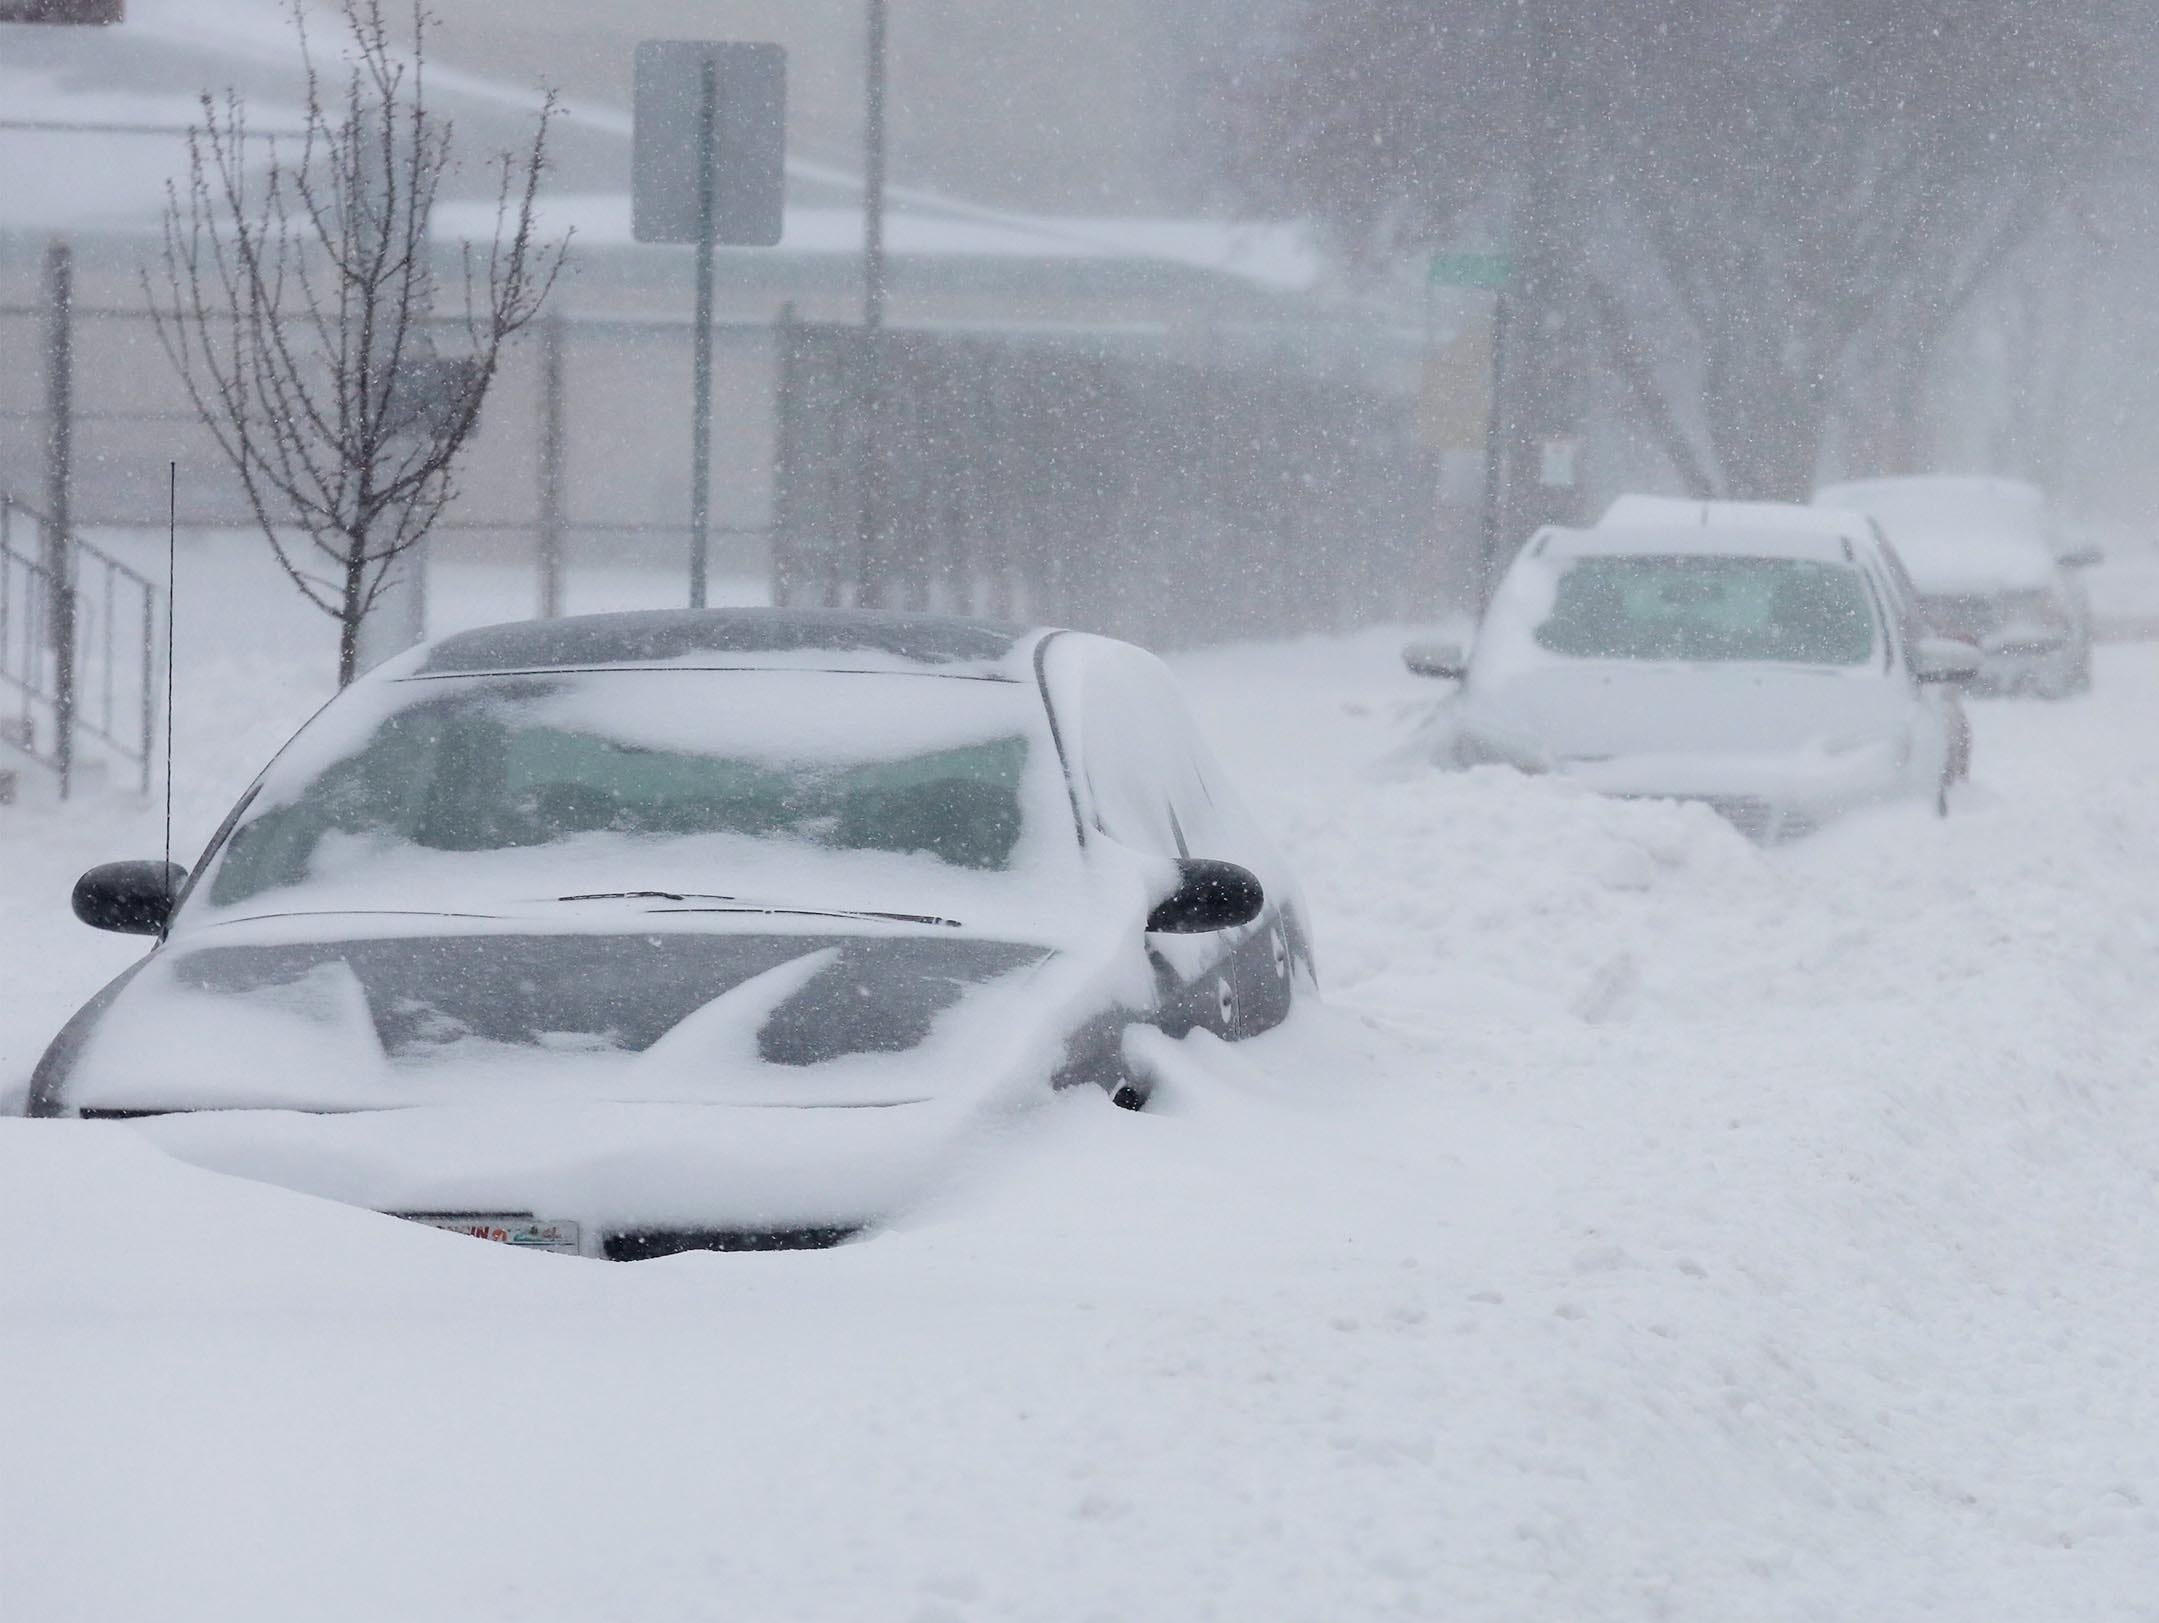 Cars are buried  in snowbanks on South Eighth Street on Monday, Jan. 28, 2019, in Sheboygan, Wis.